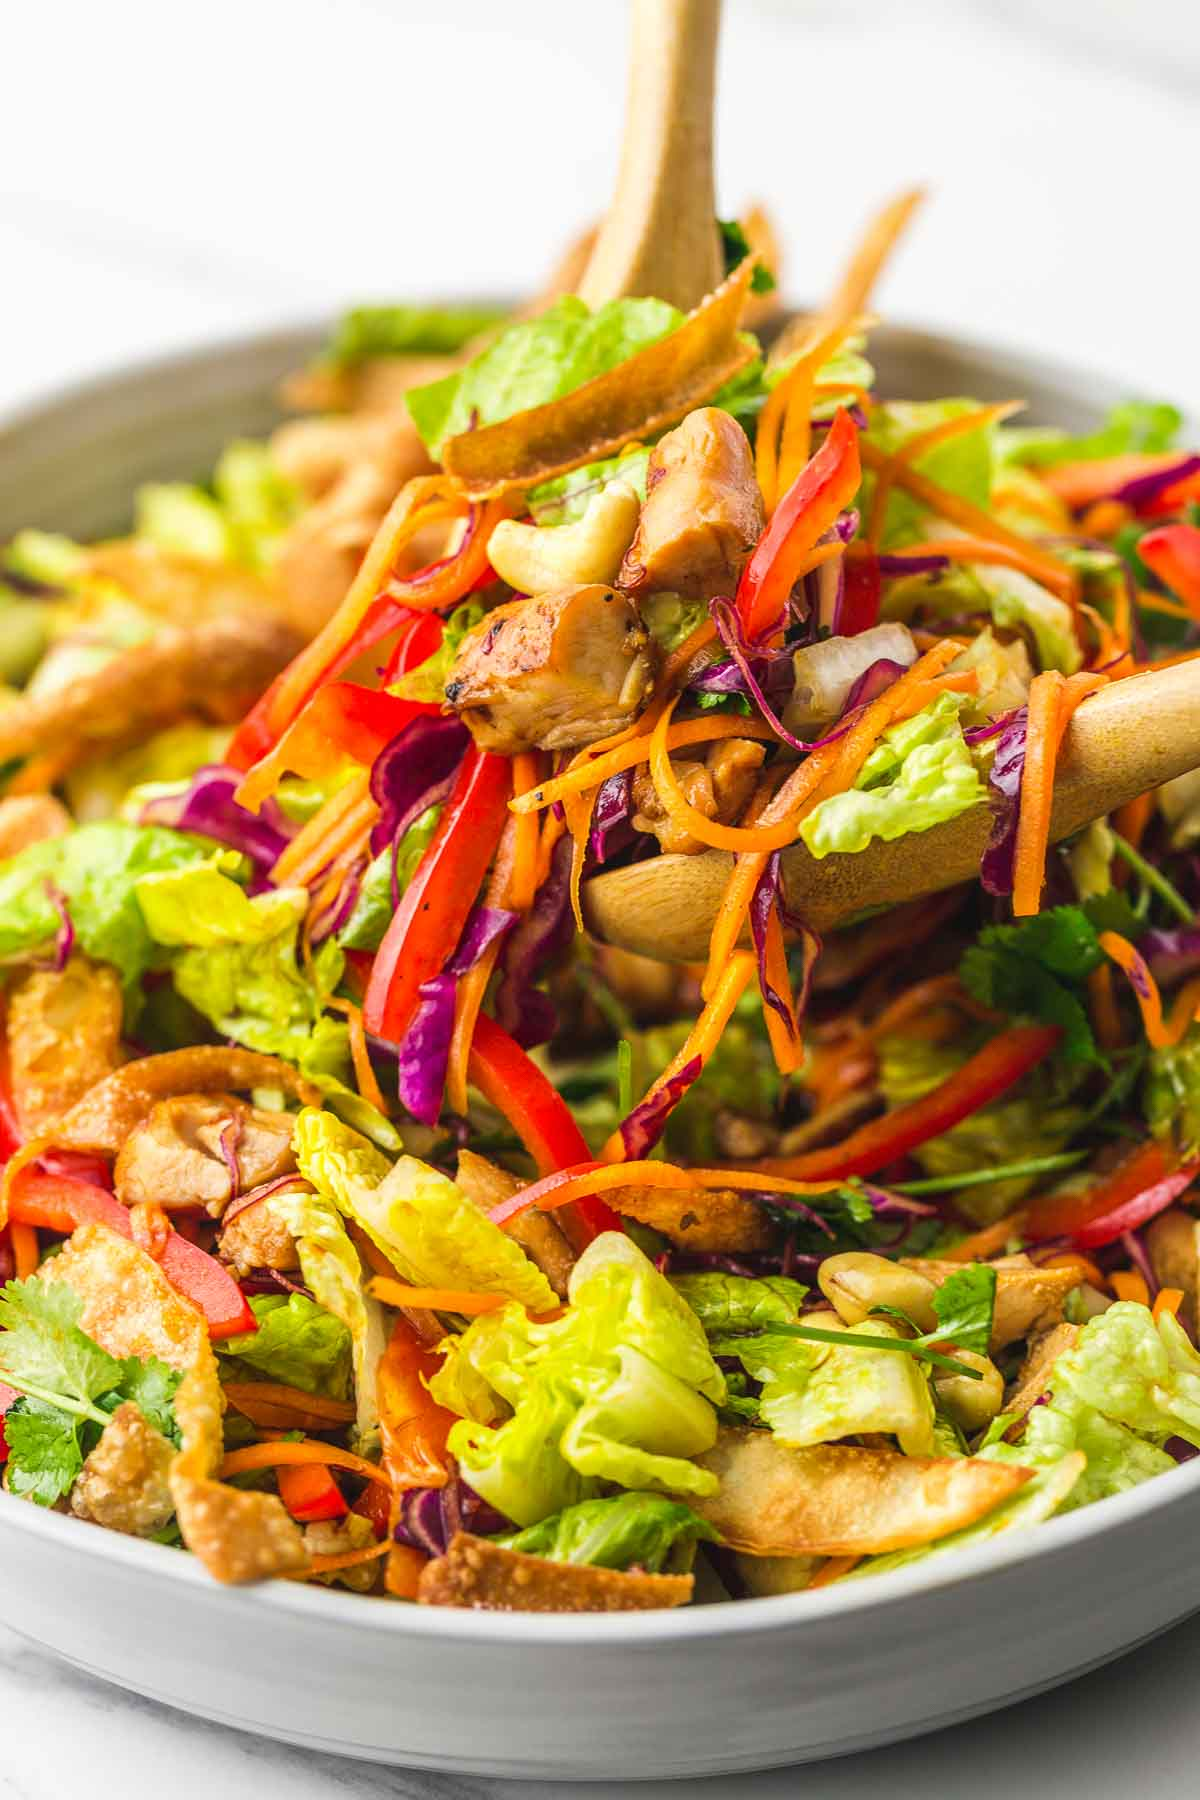 Angle shot of the Asian chicken salad, and serving spoons holding a portion of the salad to be served.